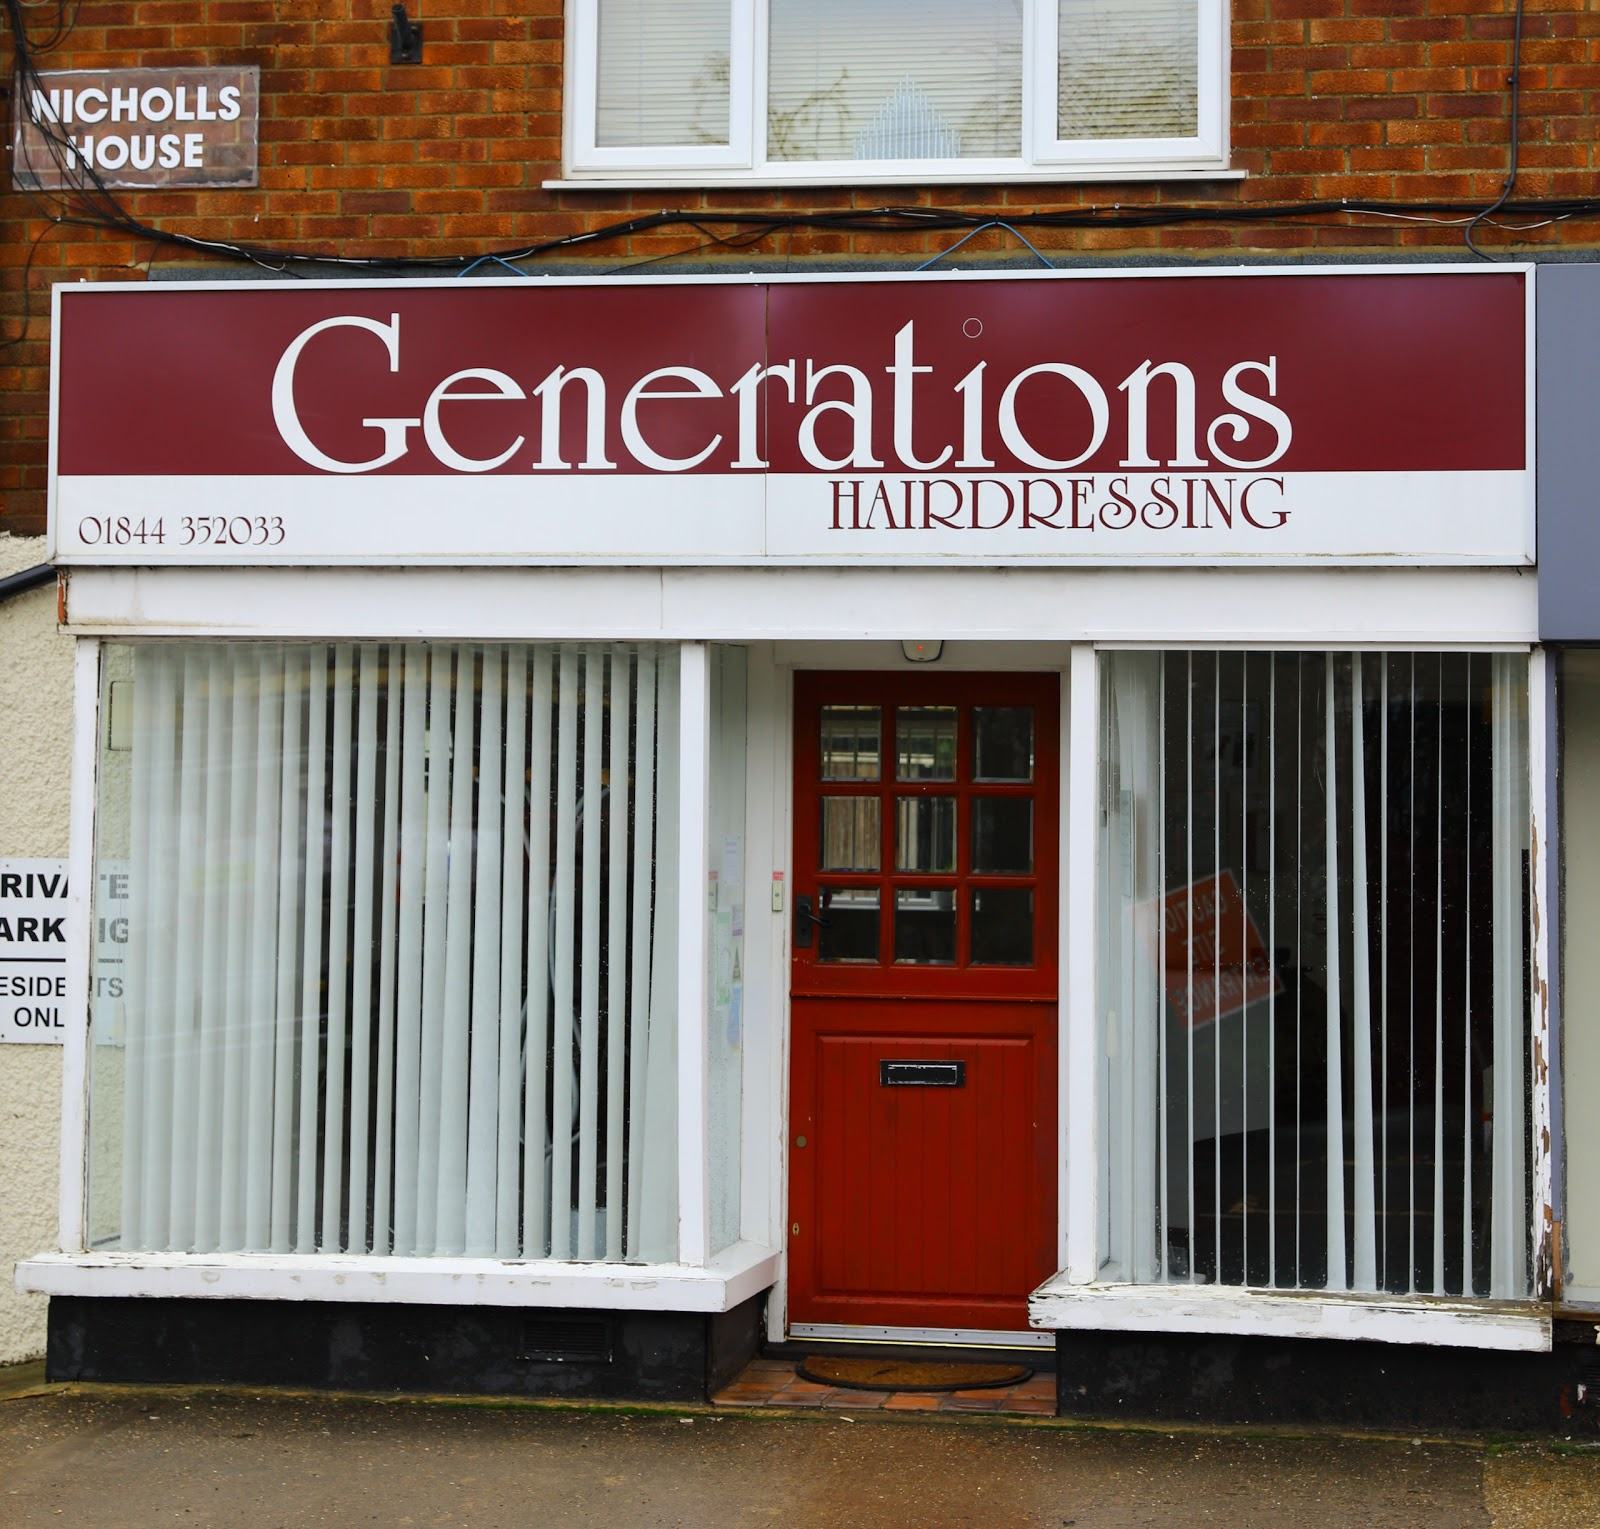 Generations Hairdressers